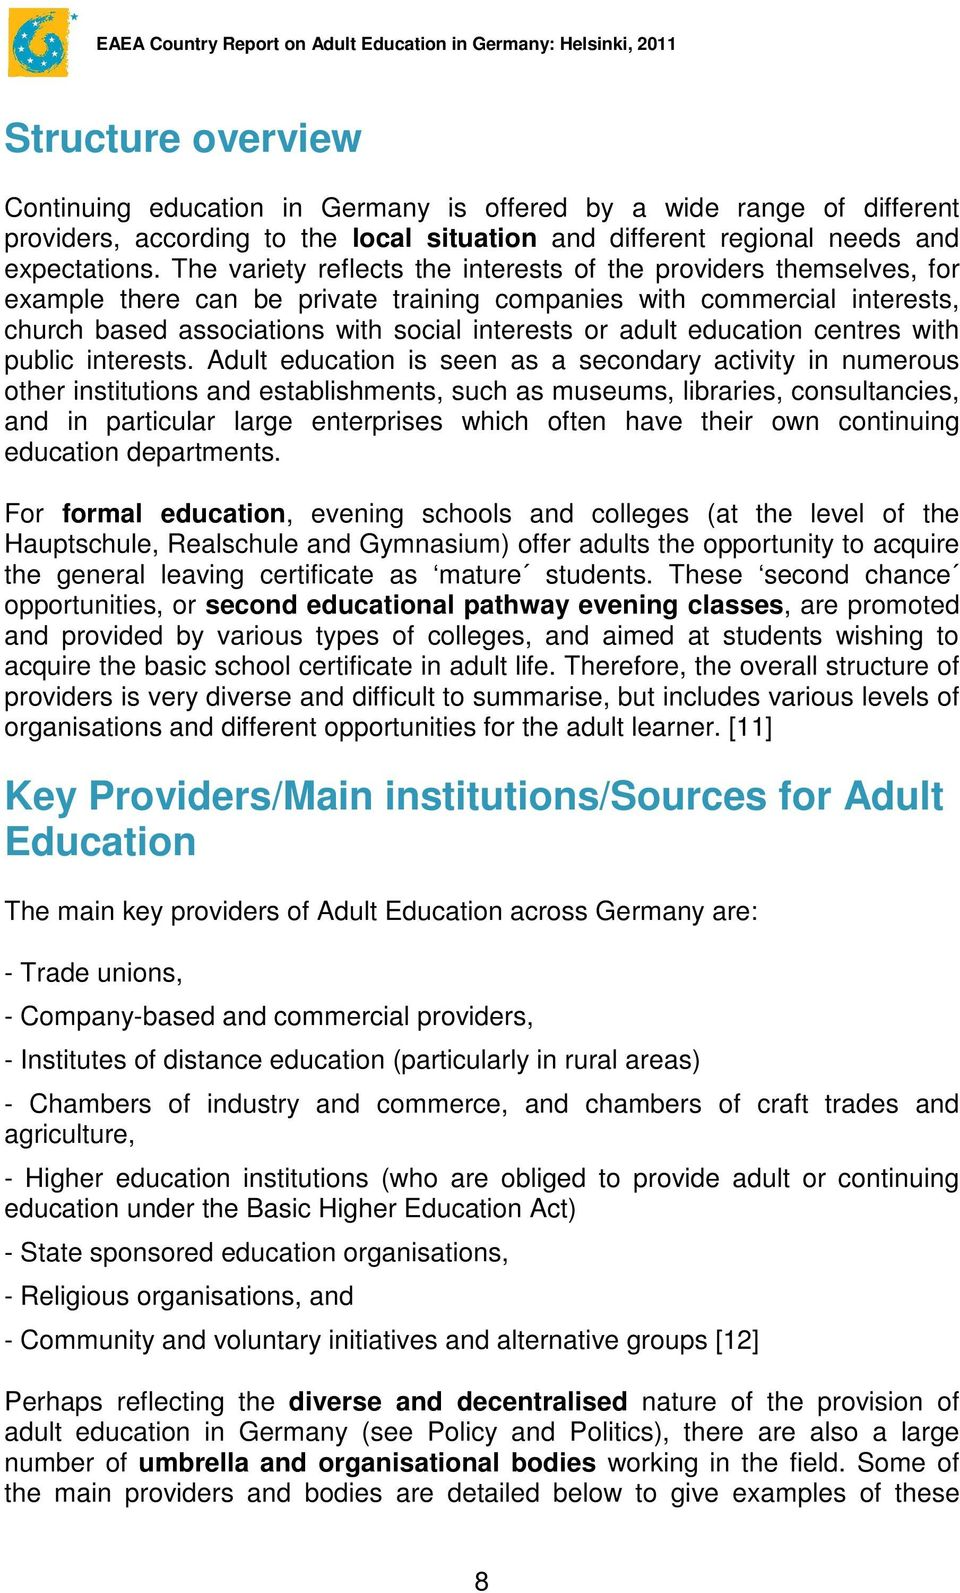 education centres with public interests.